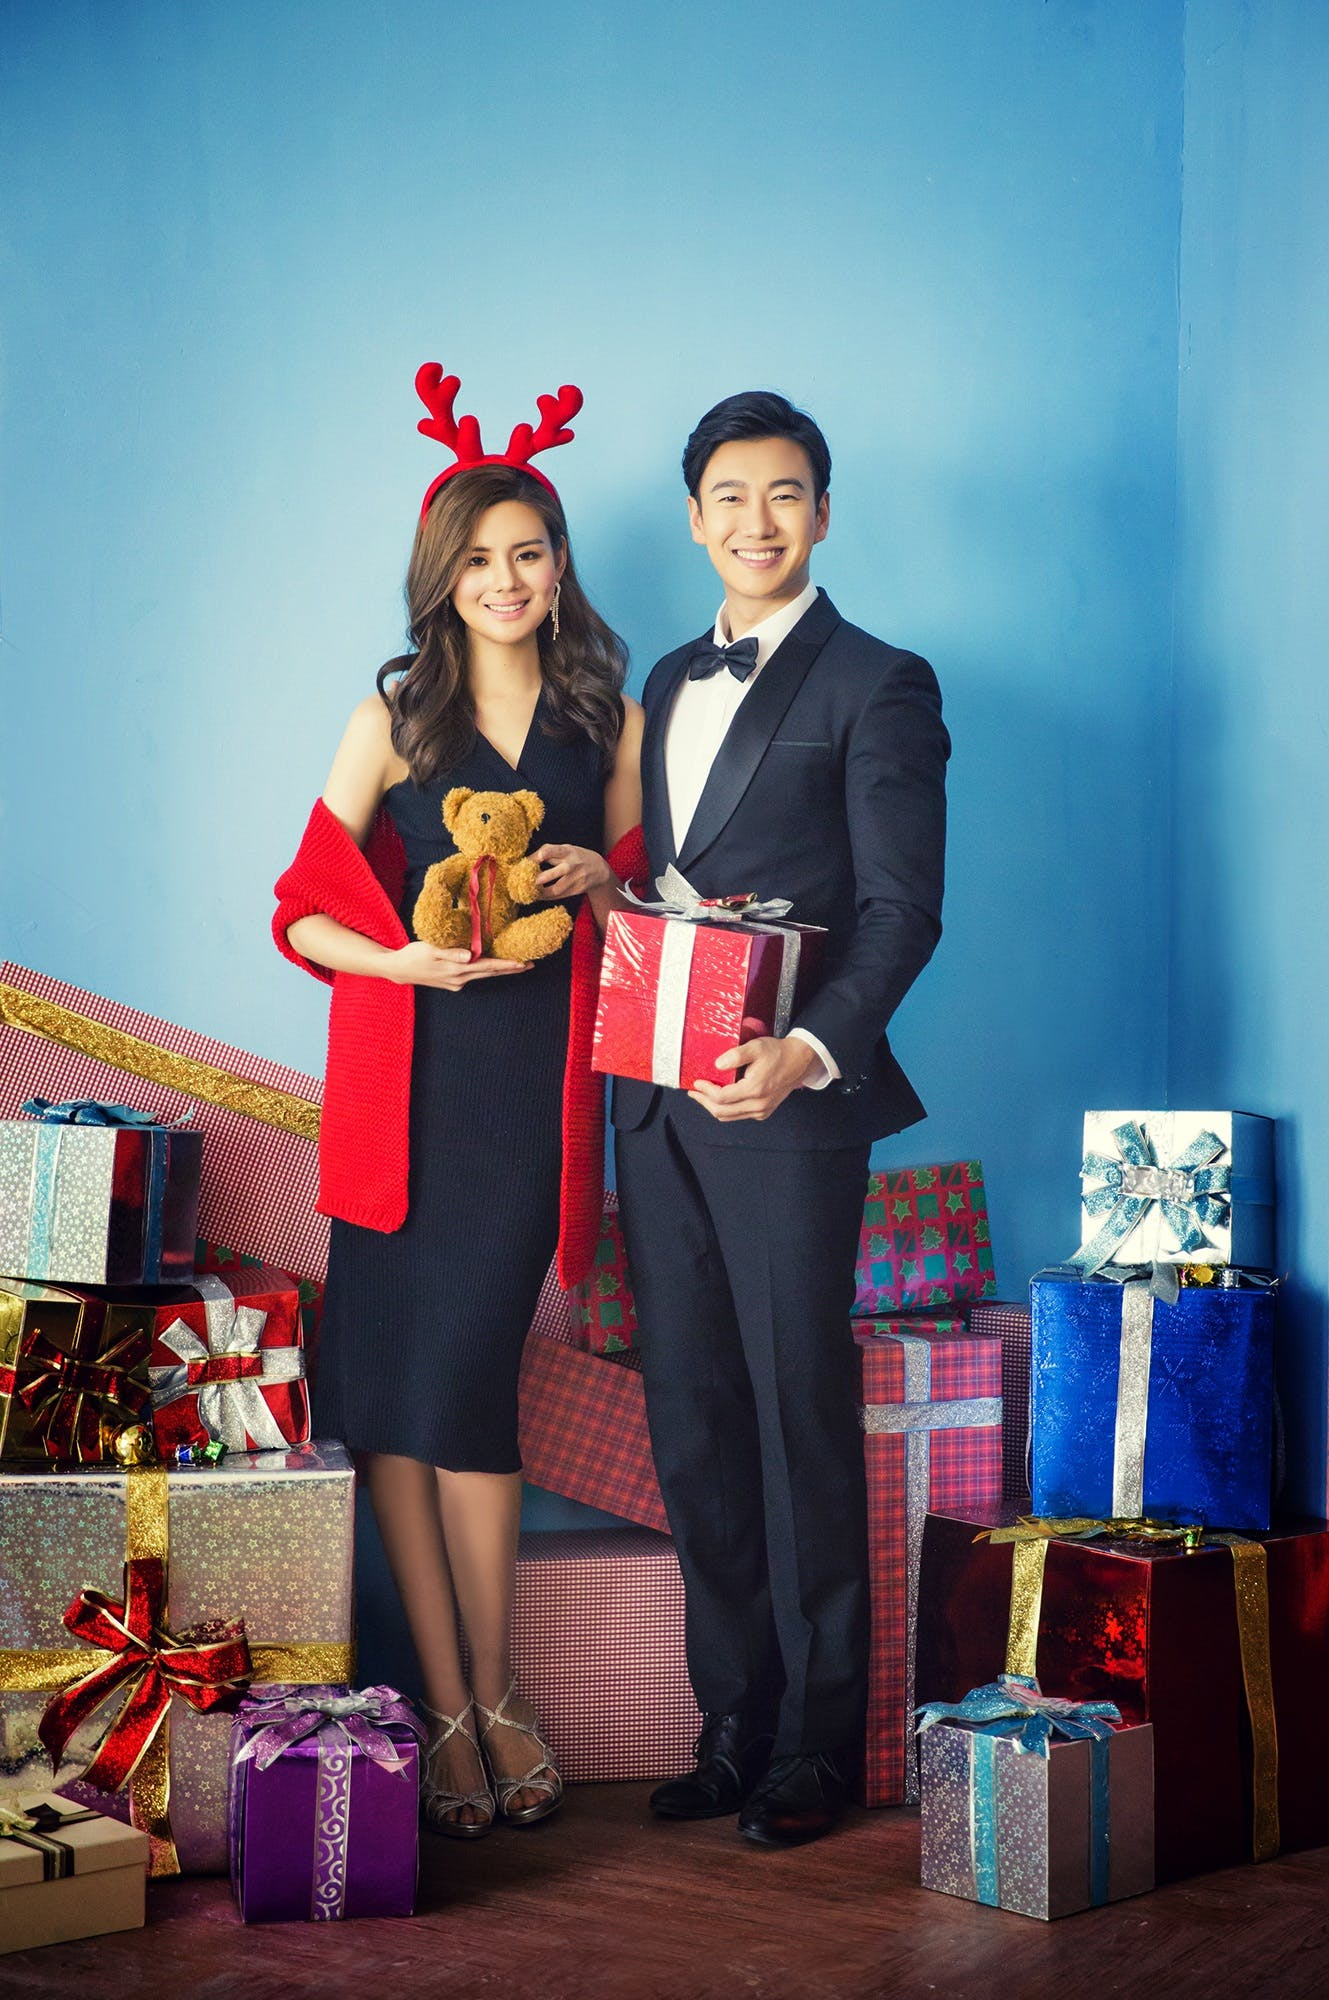 Two Woman and Man Standing Beside Wall With Gift Boxes